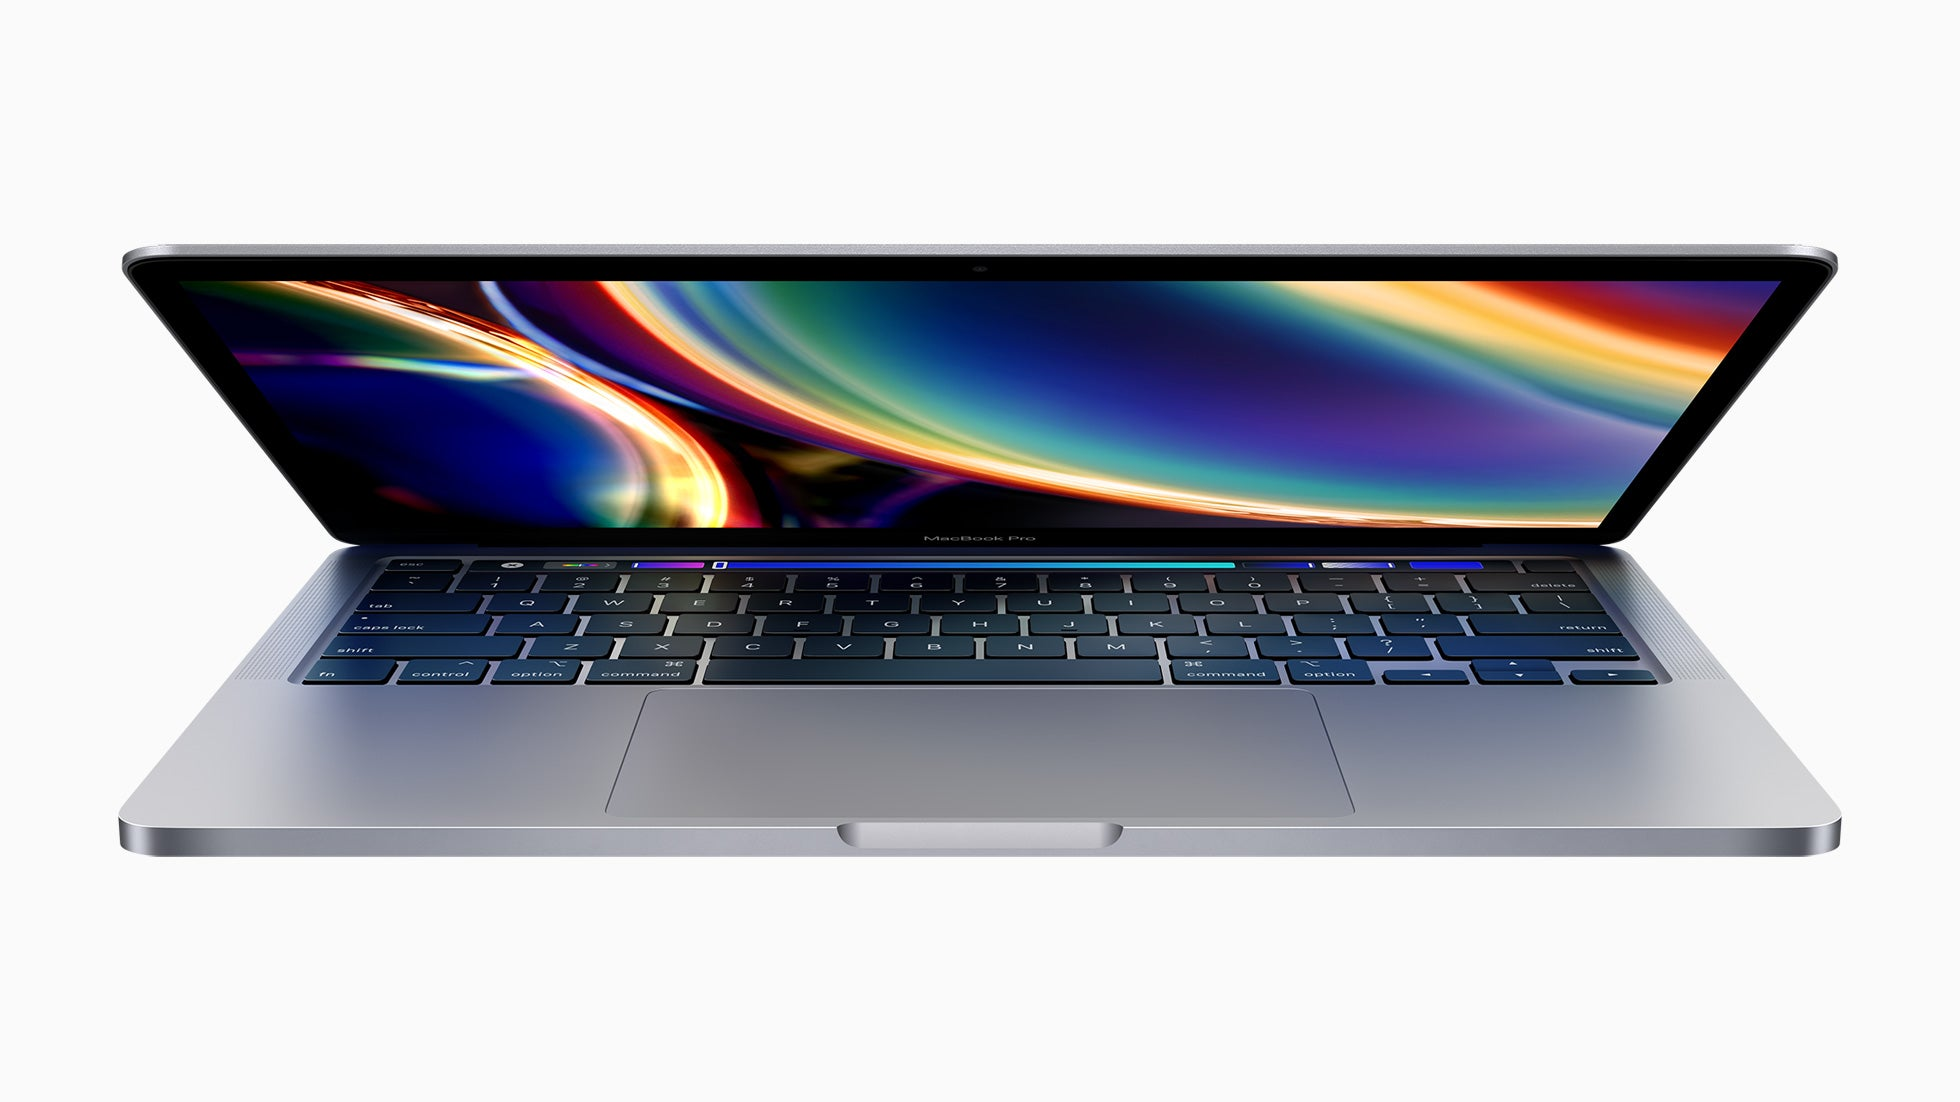 apple-macbookpro-13-inch-screen-05042020.jpg